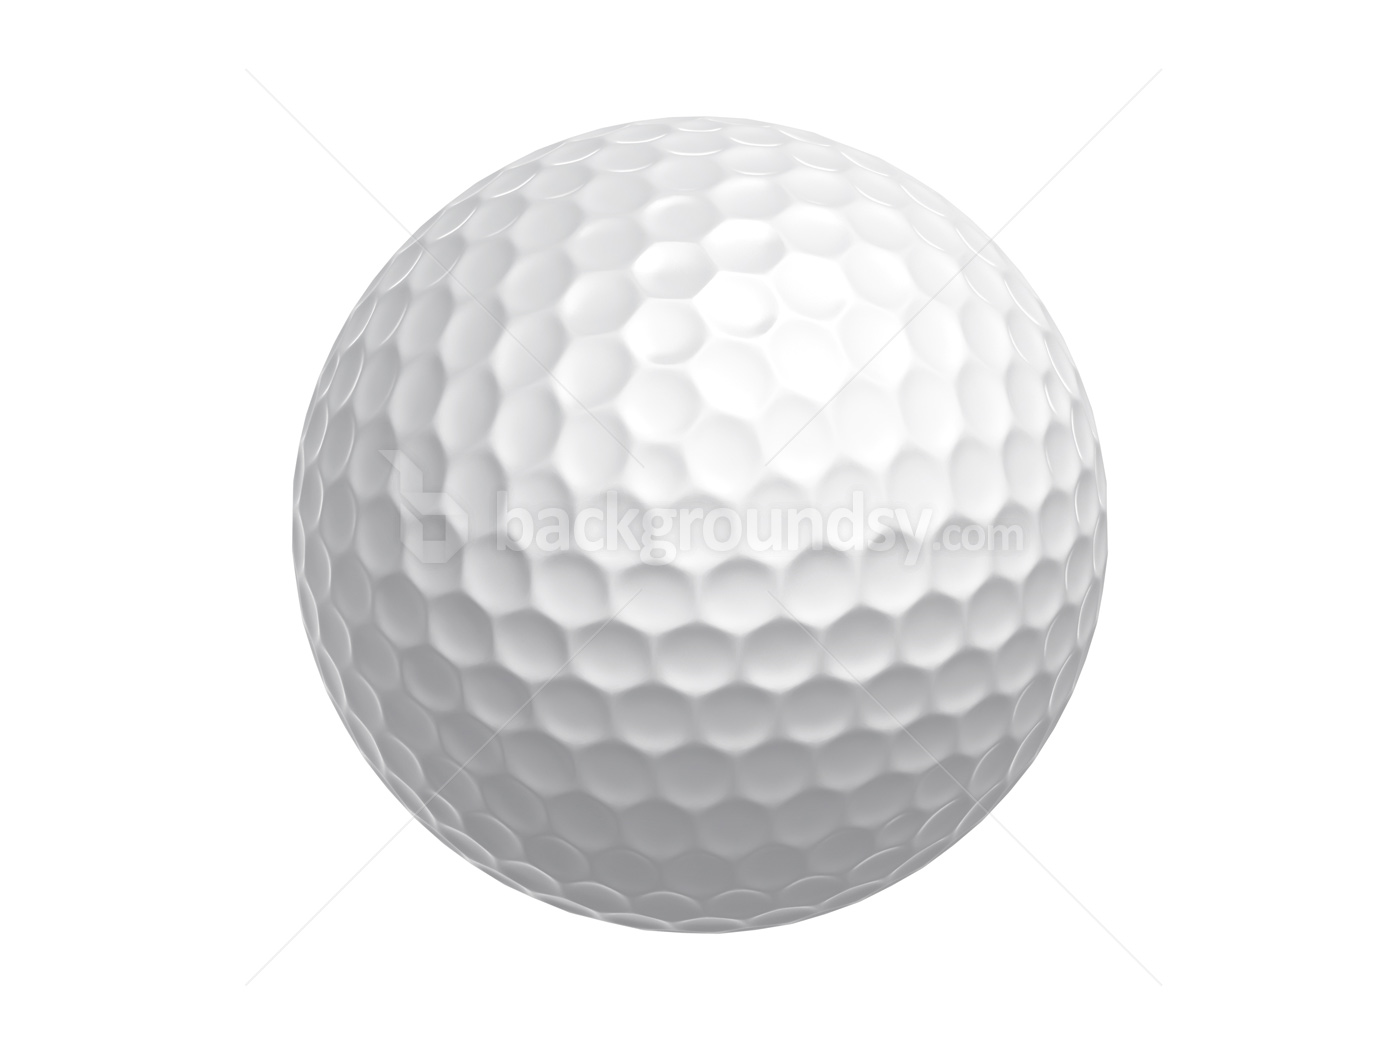 Golf Ball Transparent Background Clipart - Clipart Kid